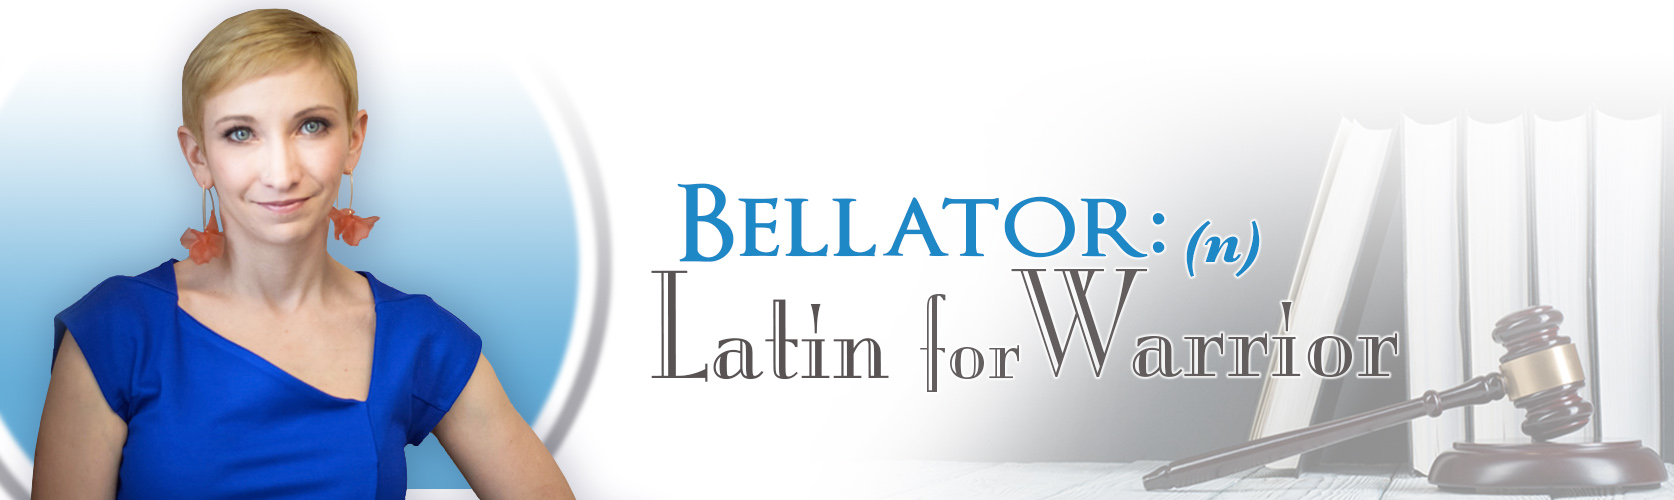 Bellator Law, Inc. Homepage Banner